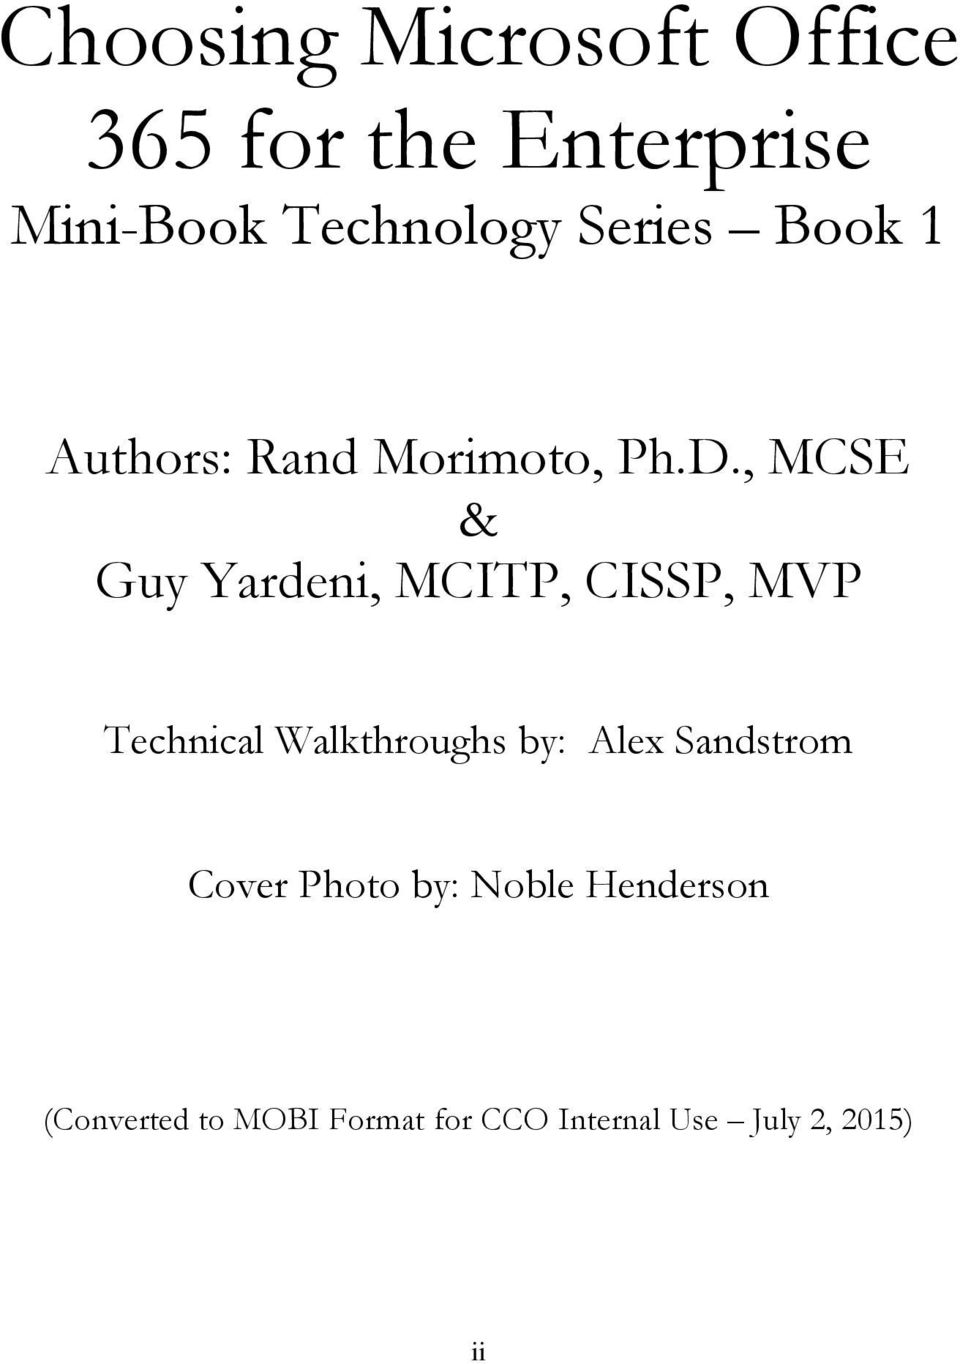 , MCSE & Guy Yardeni, MCITP, CISSP, MVP Technical Walkthroughs by: Alex